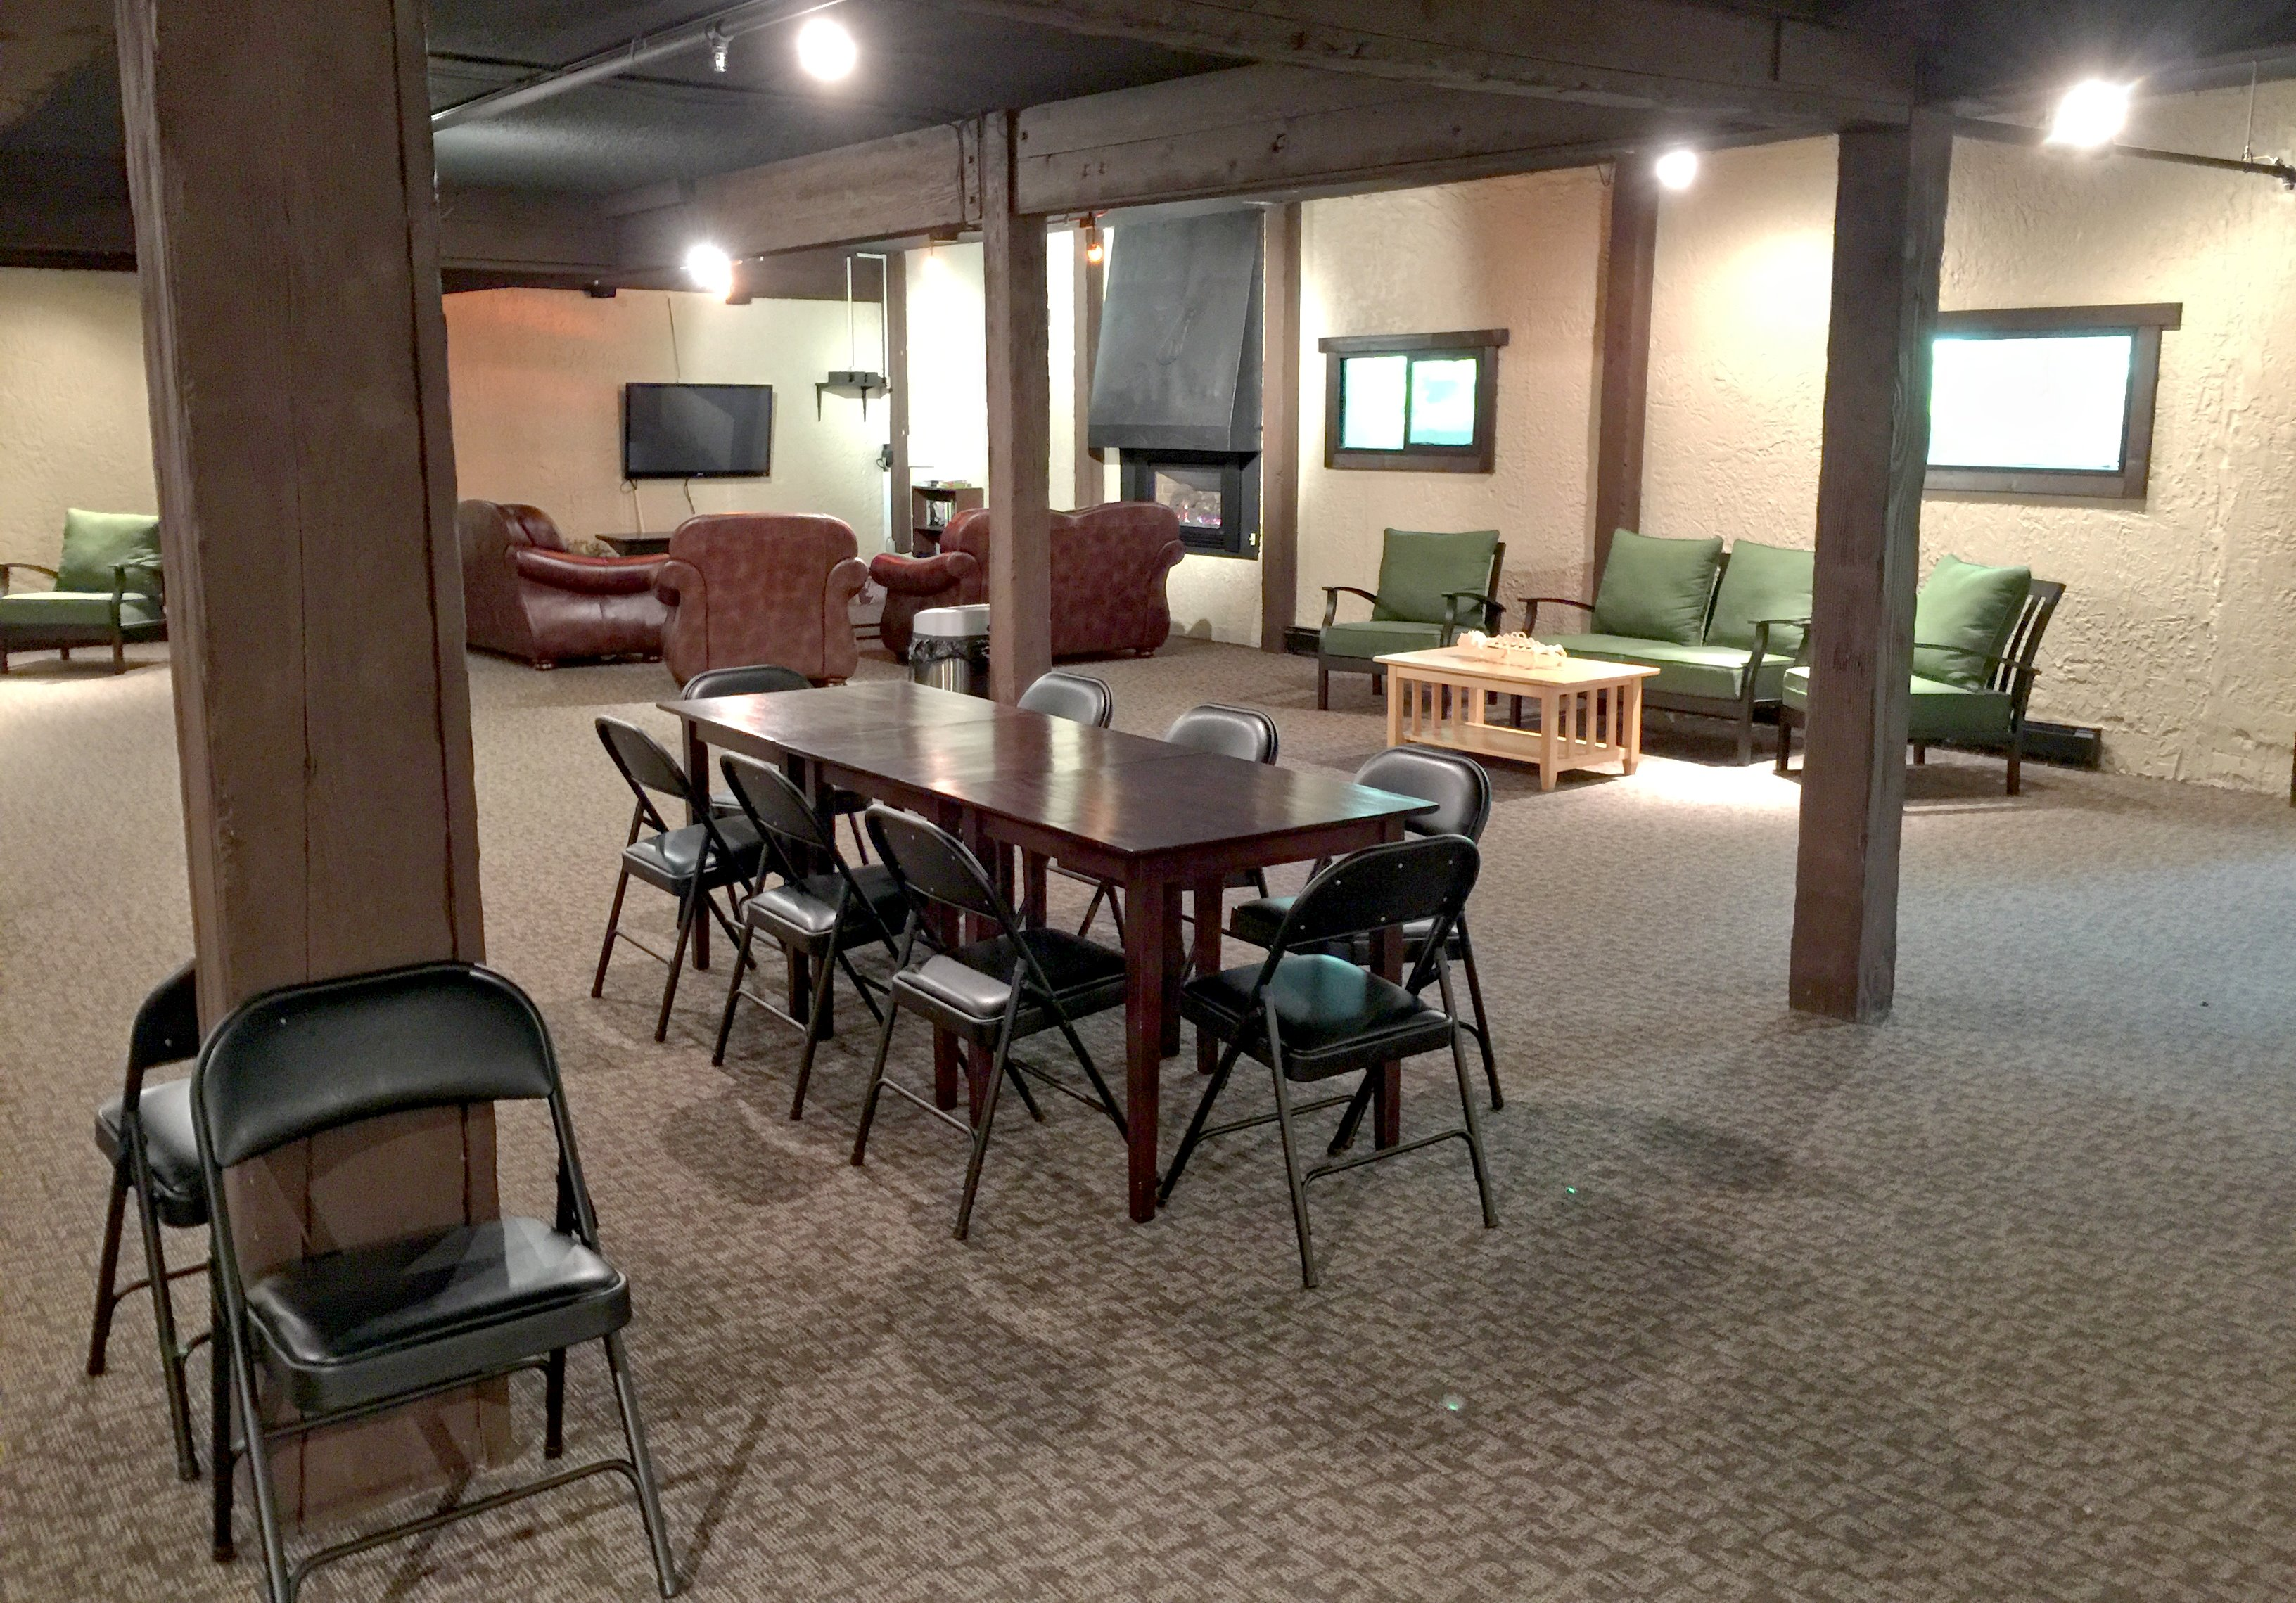 Snowline Lodge Recreation Area in lower level of building